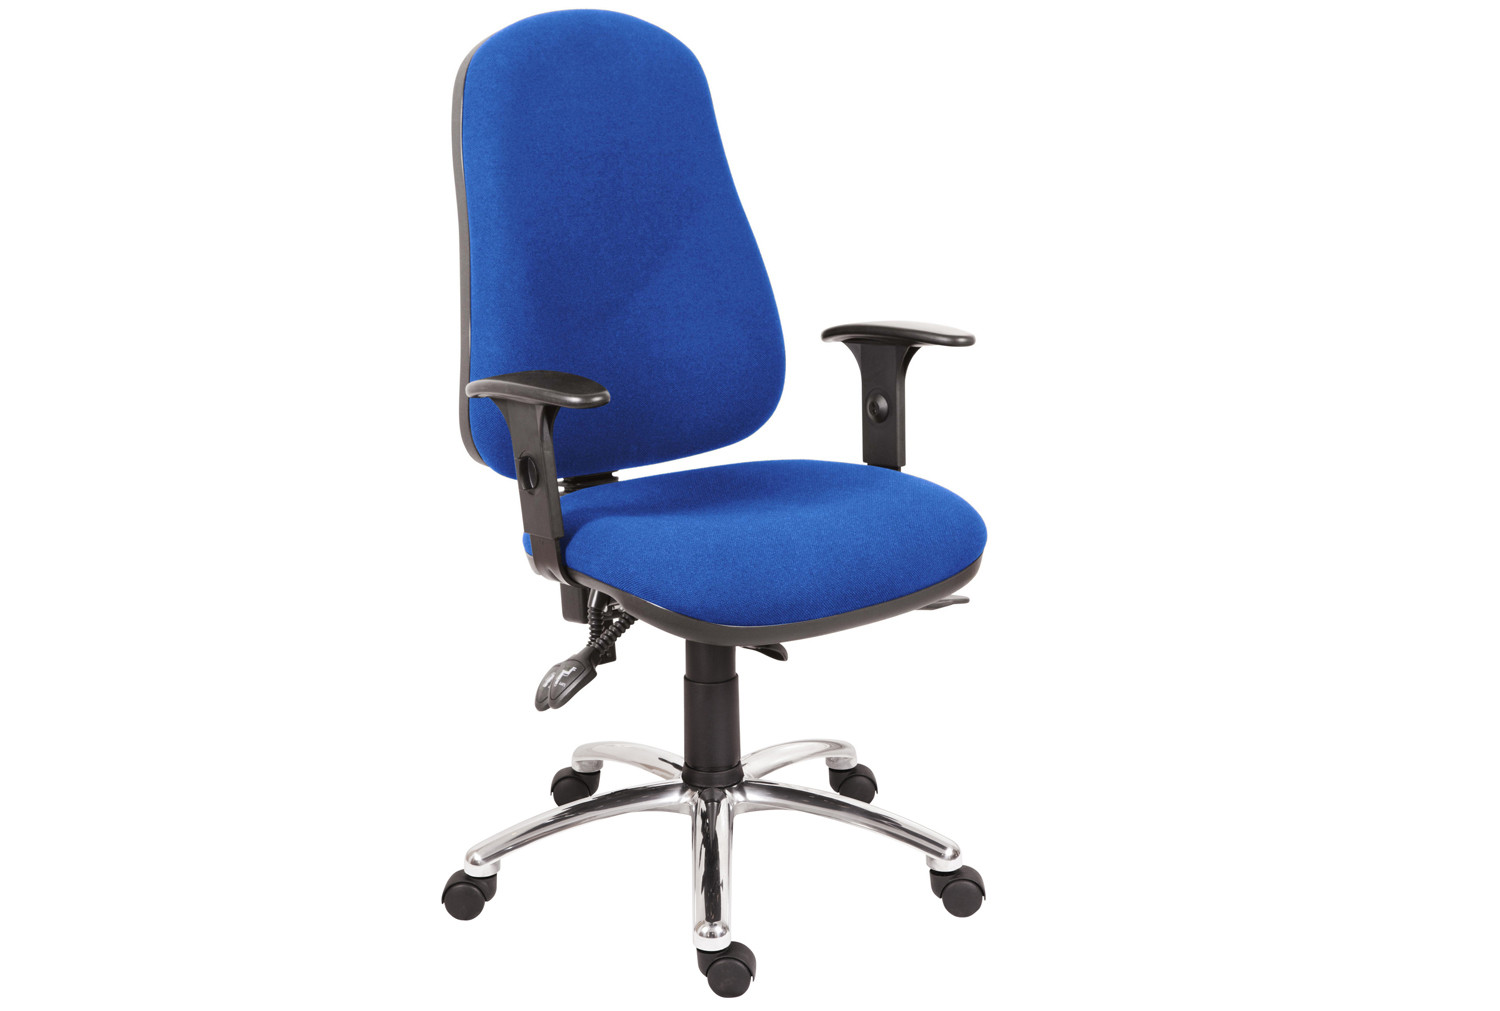 Comfort Ergo Operator Chair With Chrome Base (Fabric)